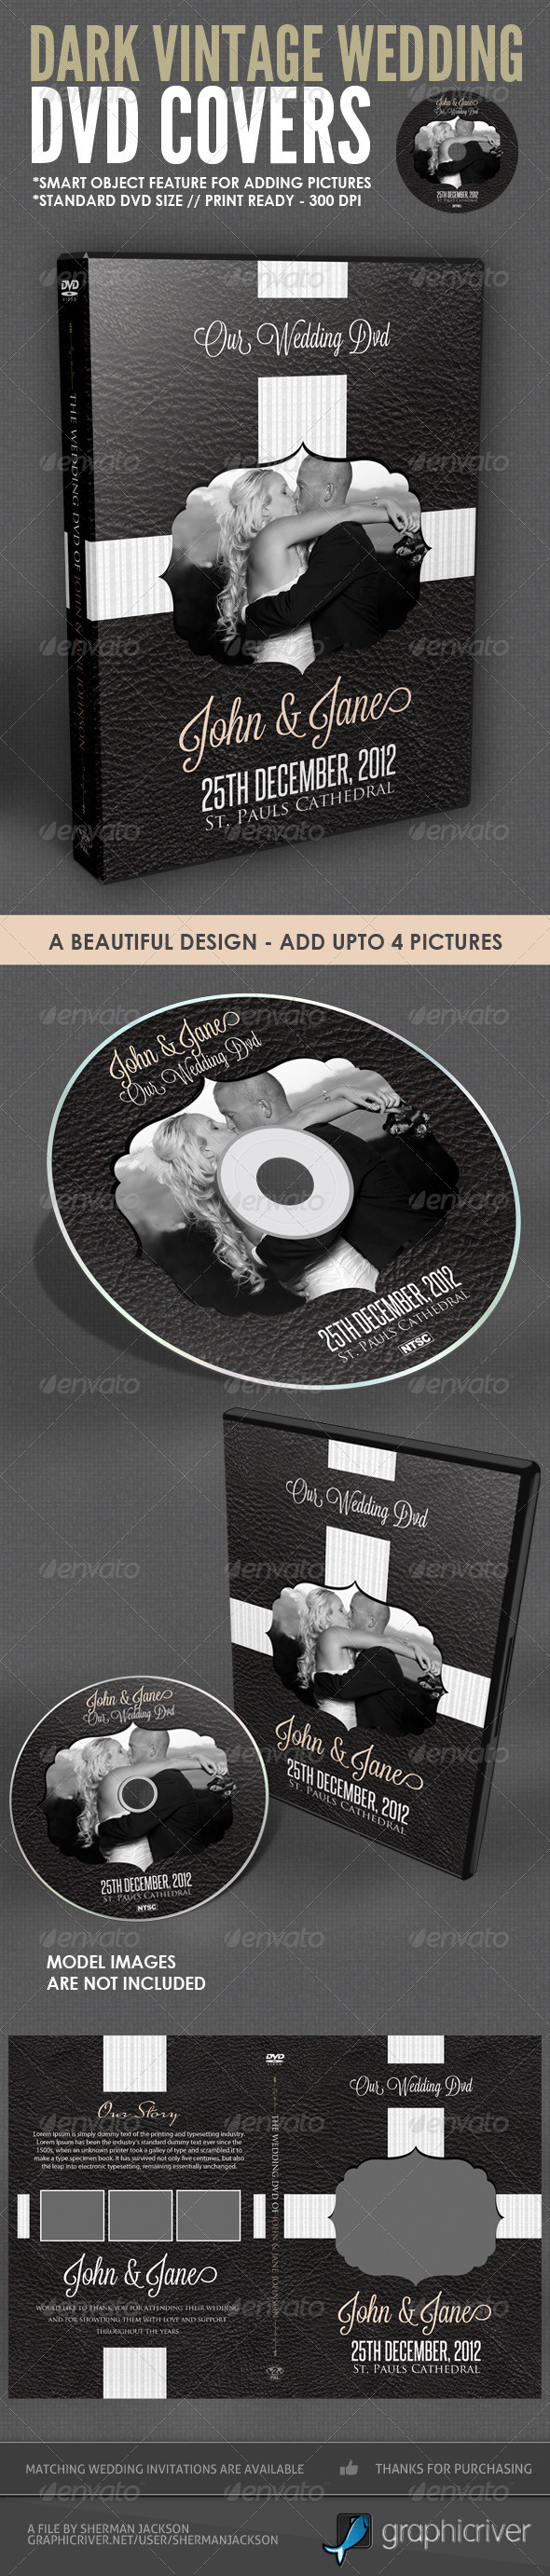 Dark Vintage Wedding DVD Cover Template - CD & DVD artwork Print Templates